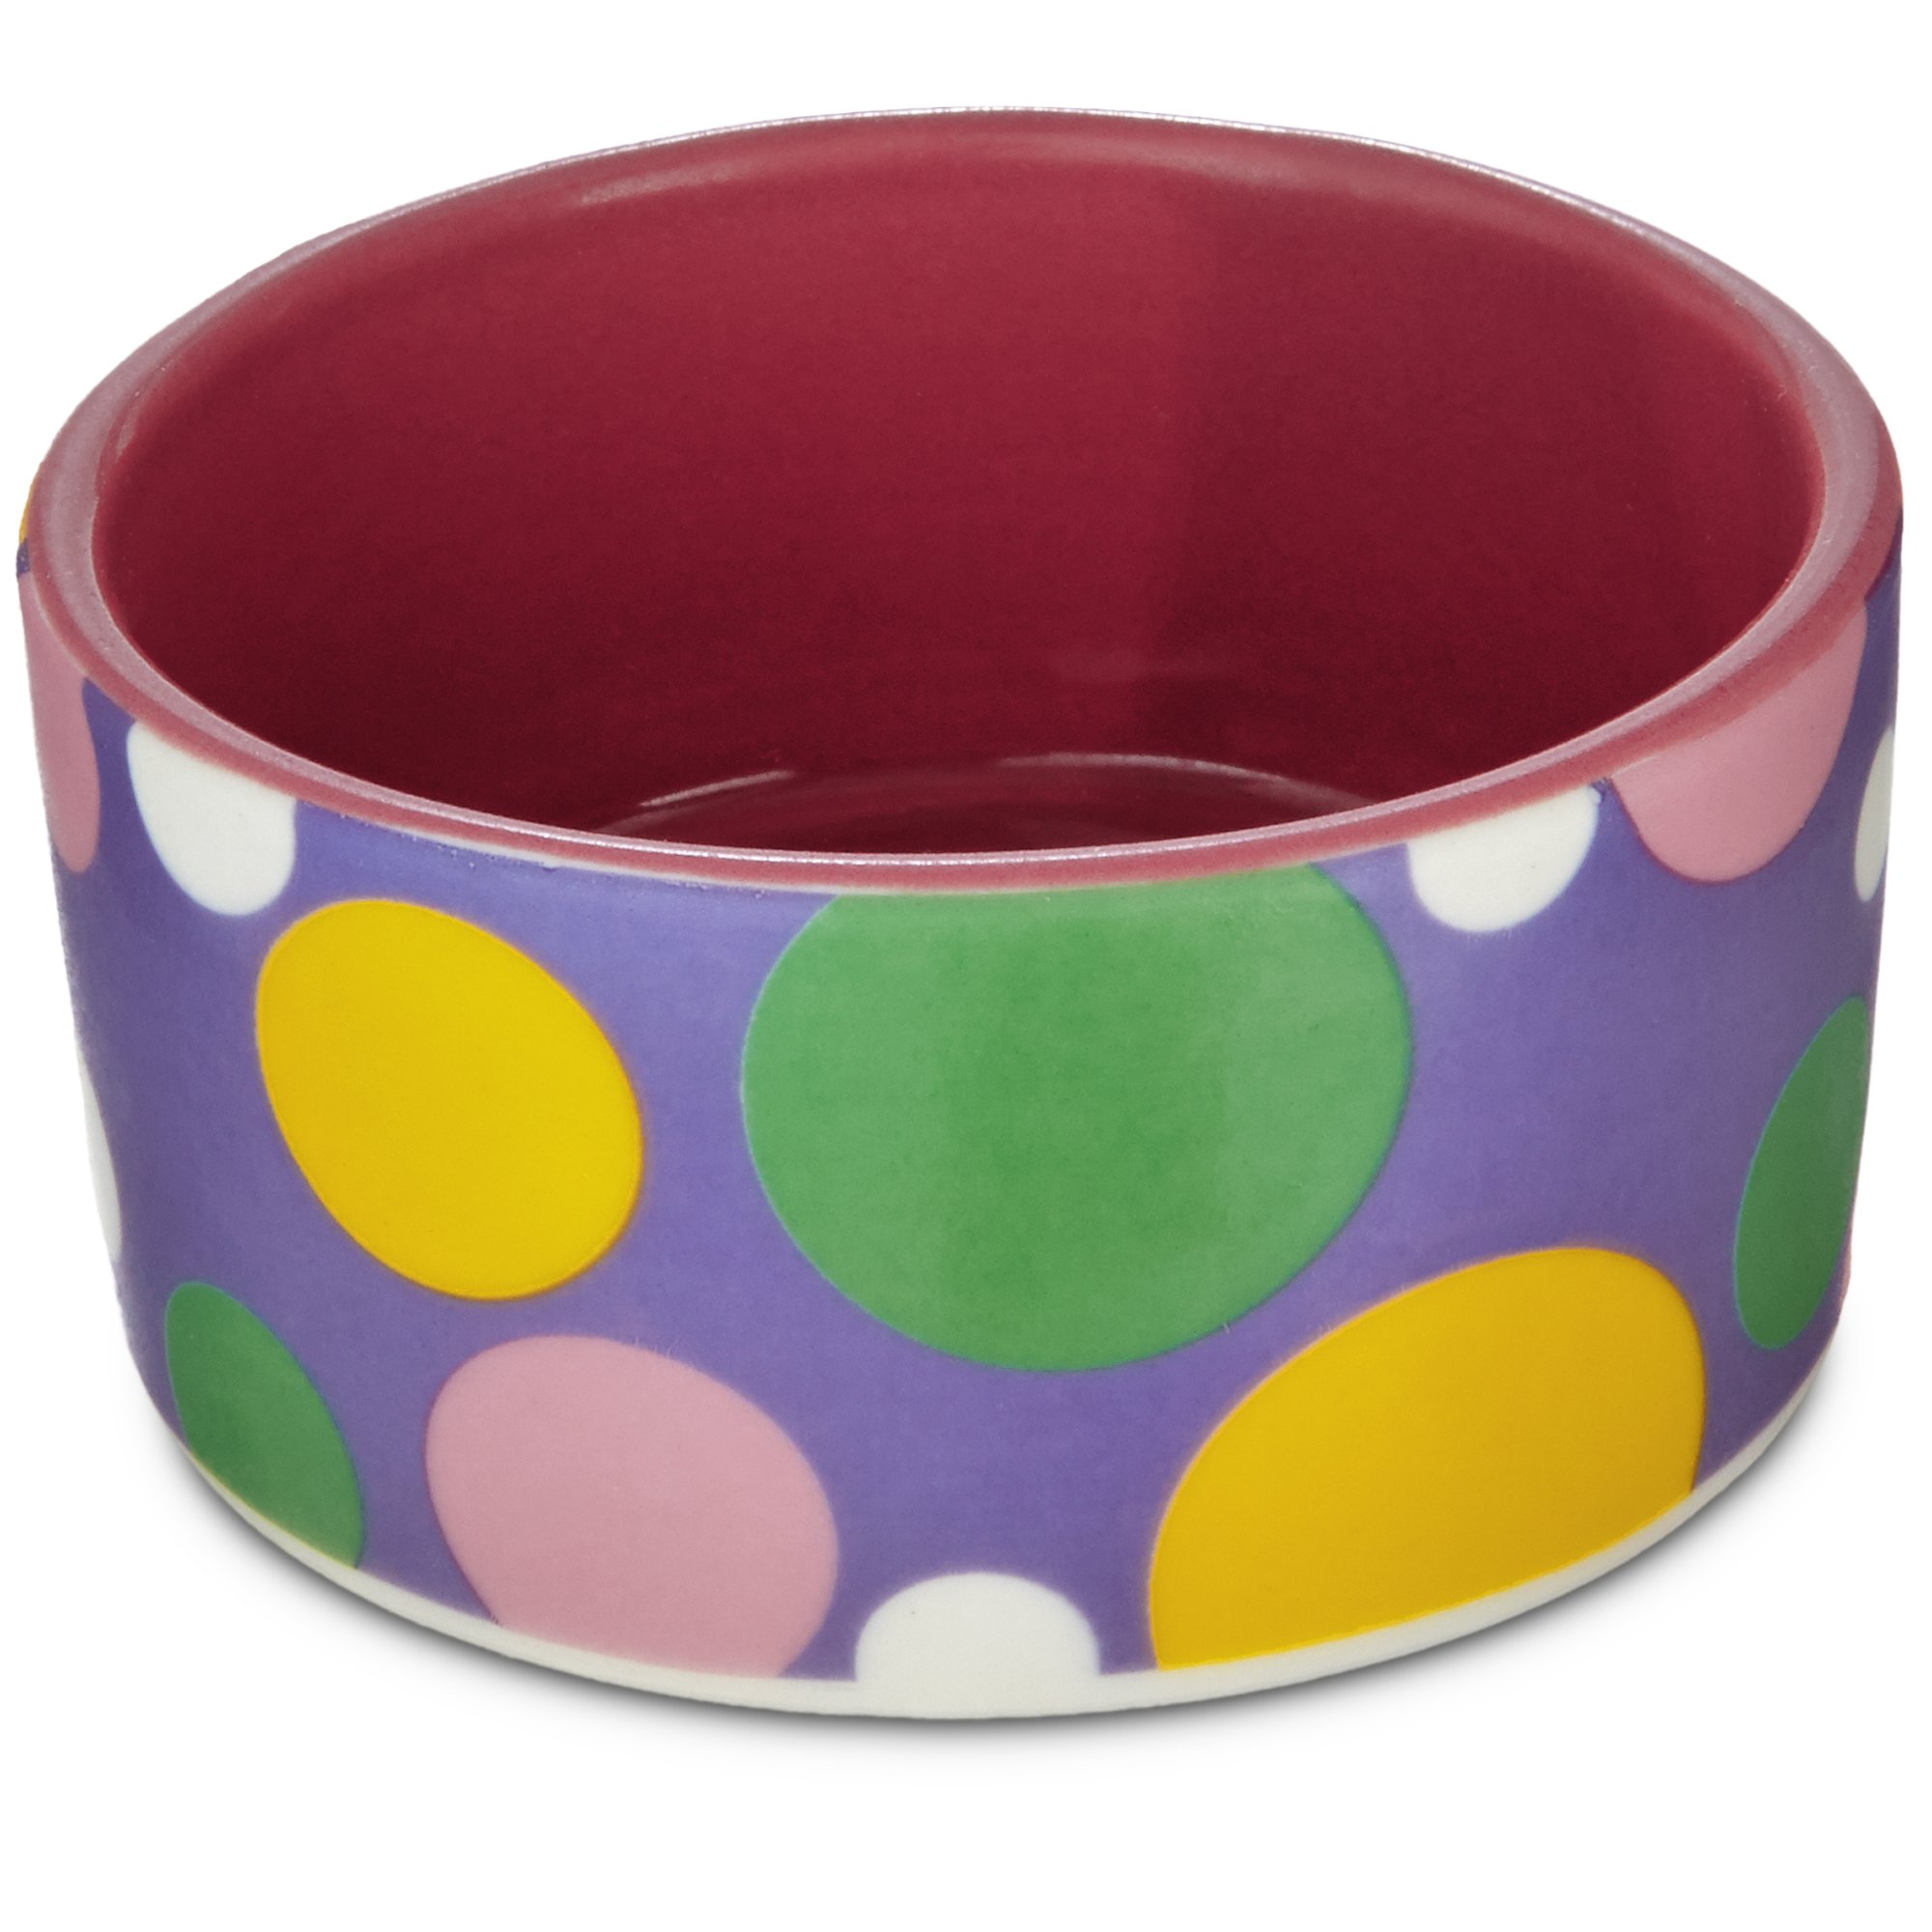 You & Me Pink Polka Dot Dish, Small